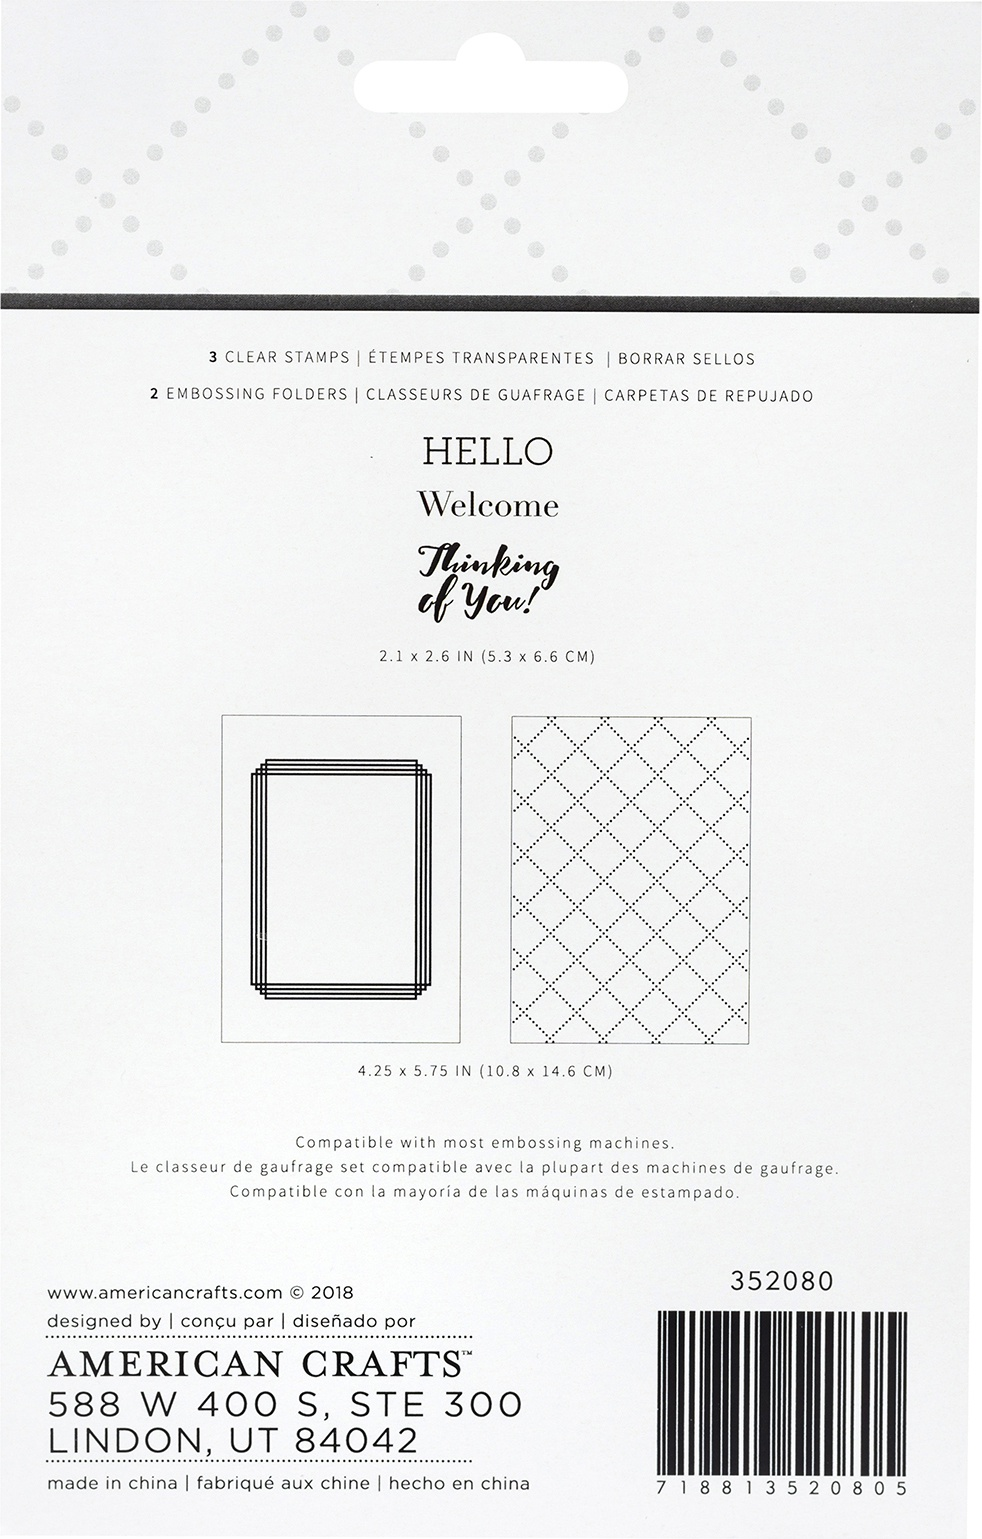 American Crafts Embossing Folders & Stamps Set-Welcome